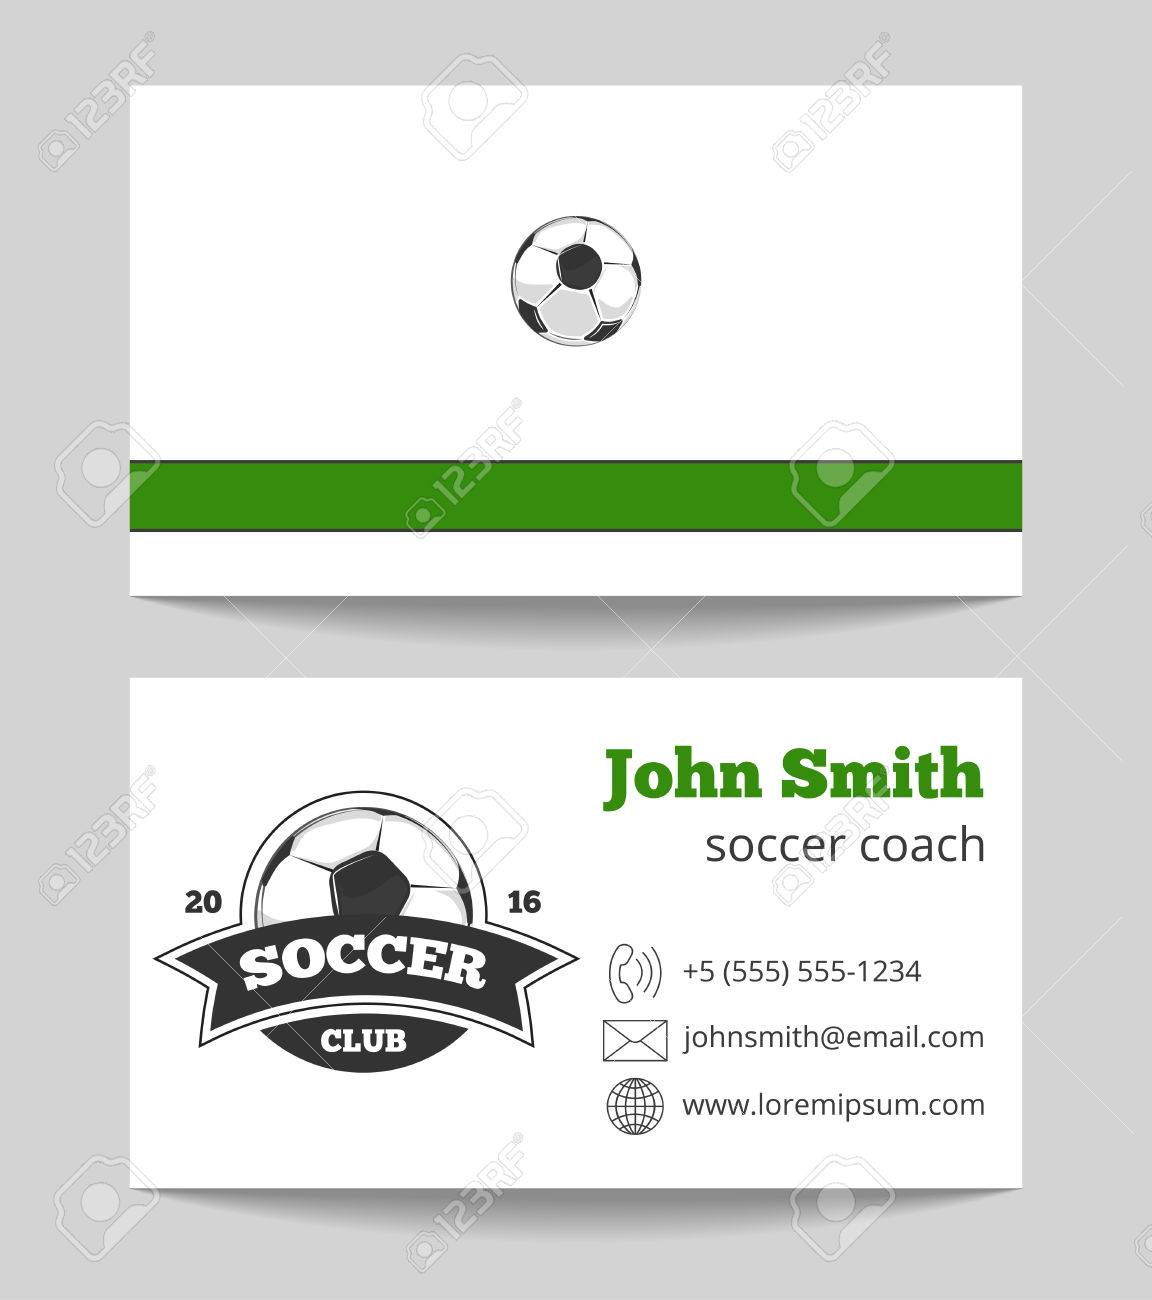 Soccer Club Business Card Green And White. Football Club. Vector ...